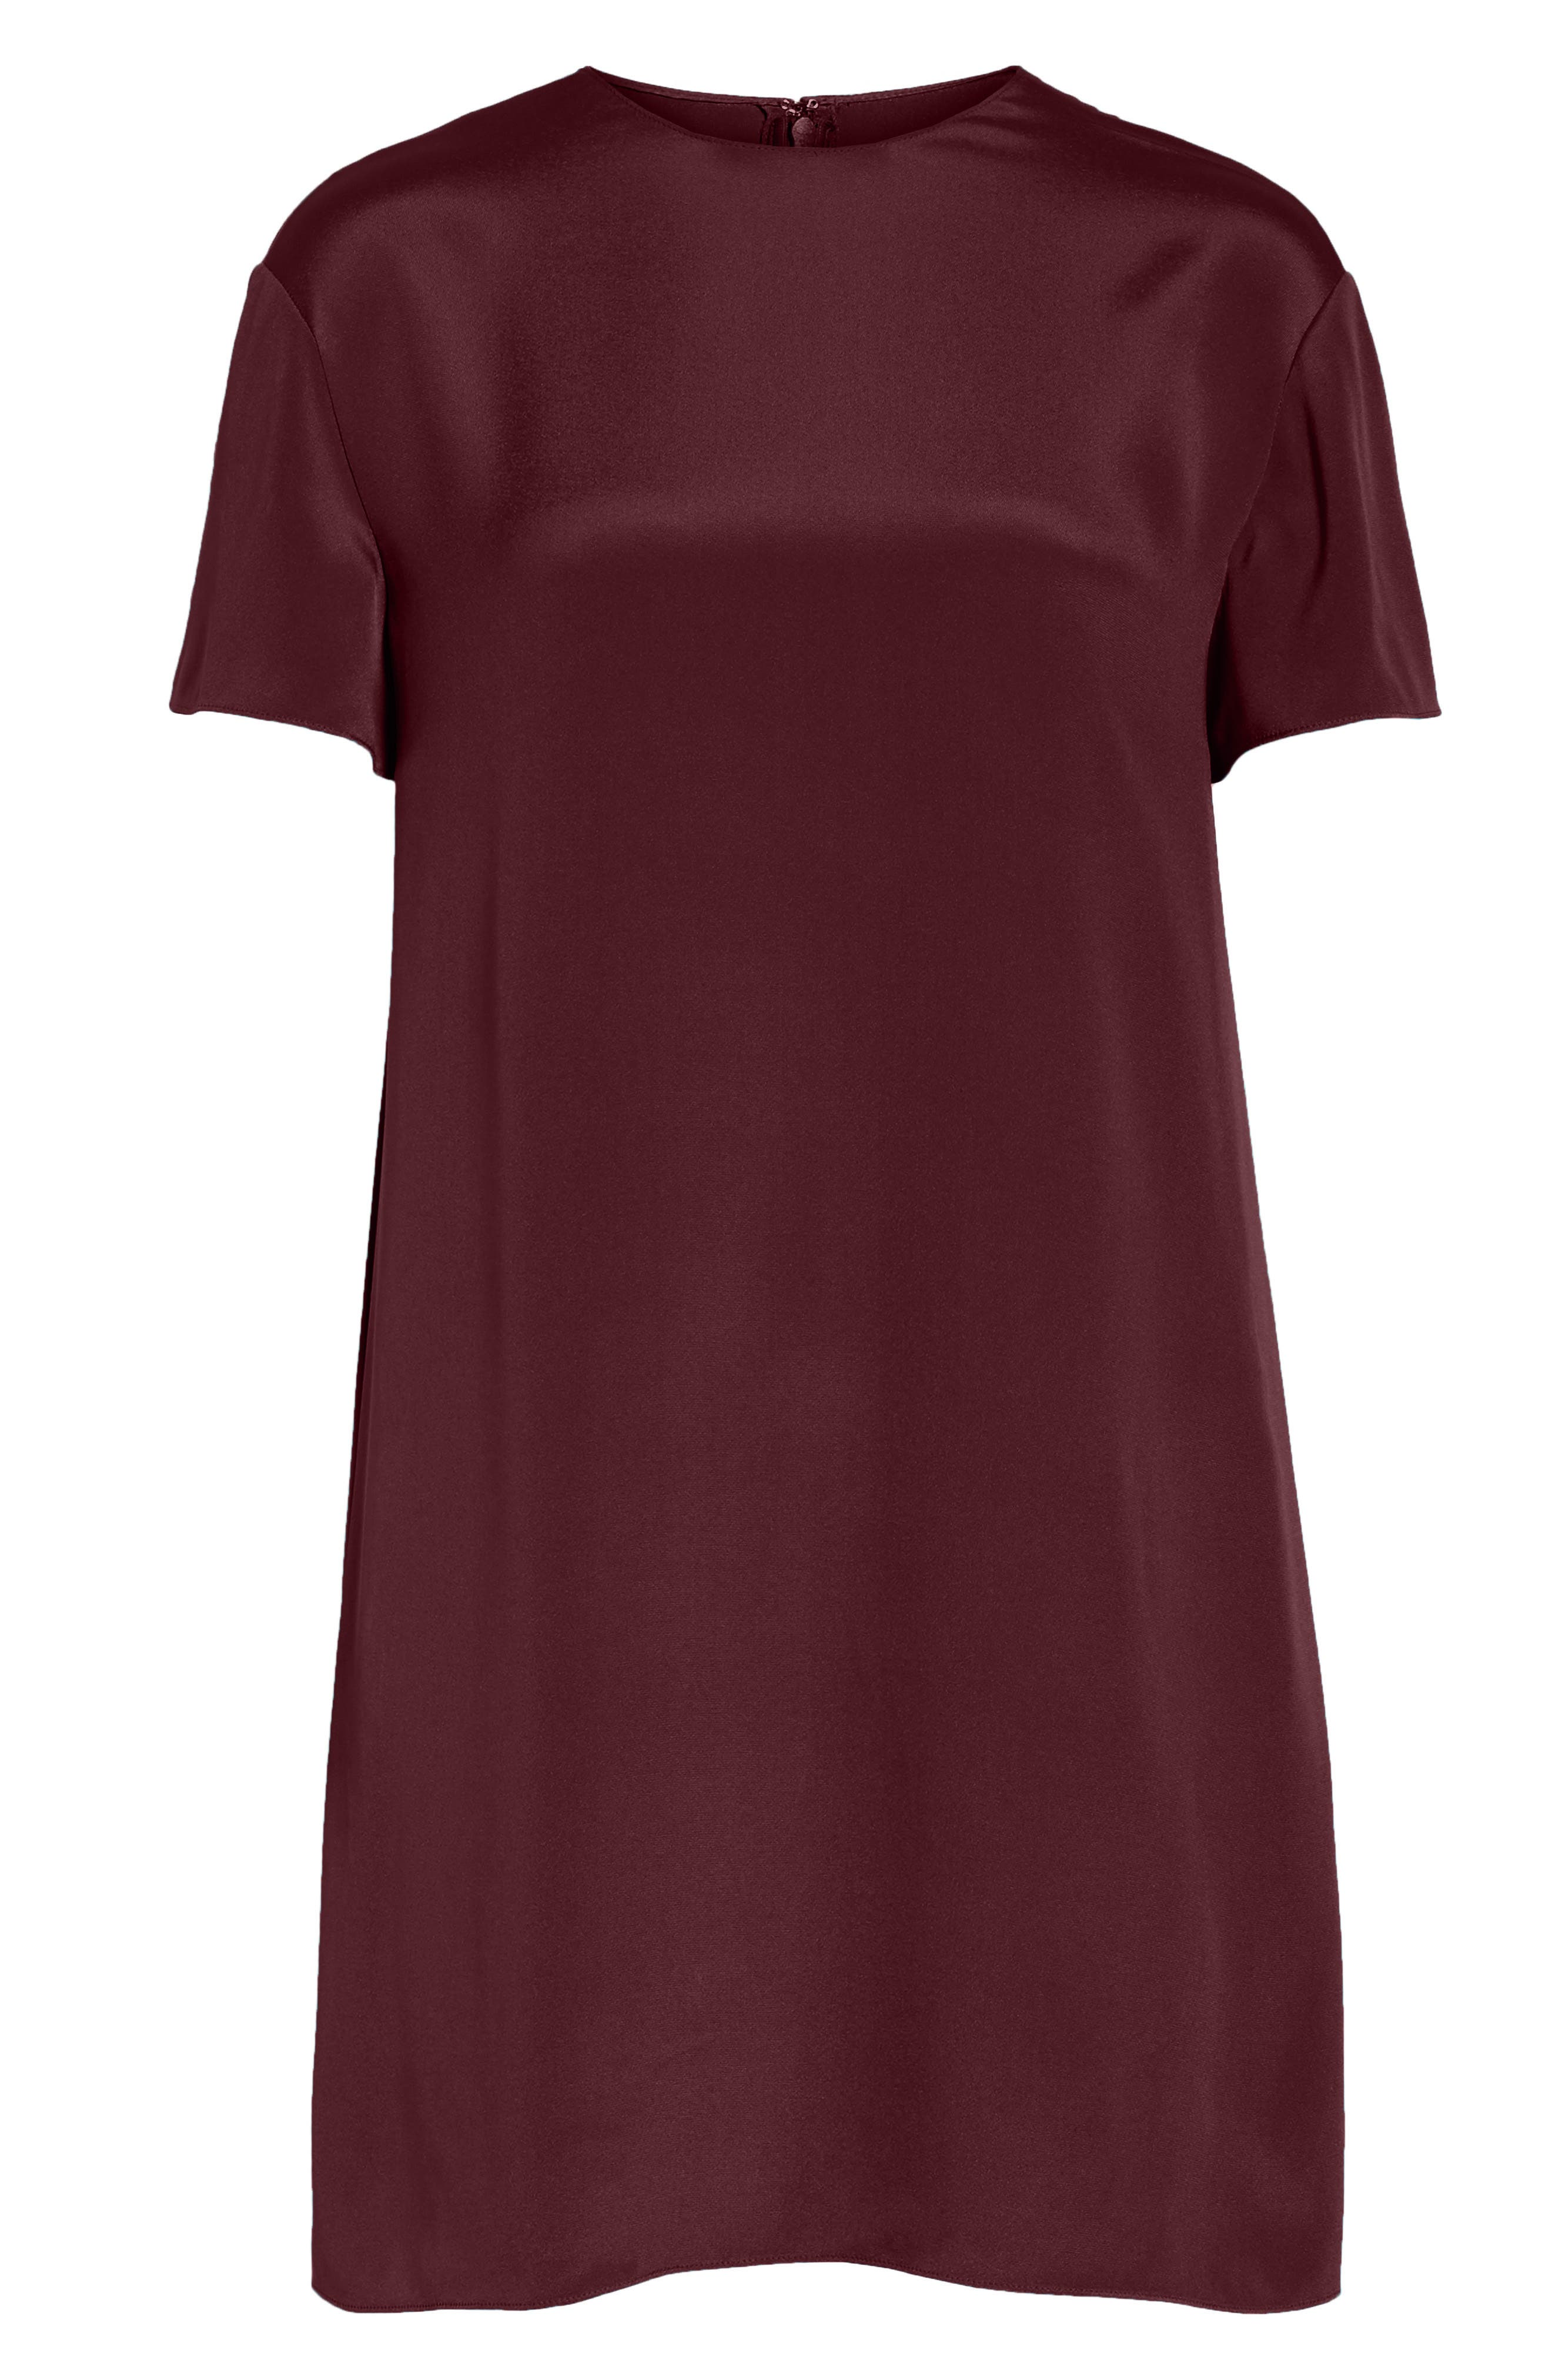 Silk Shift Dress,                             Alternate thumbnail 6, color,                             Burgundy / Ivory